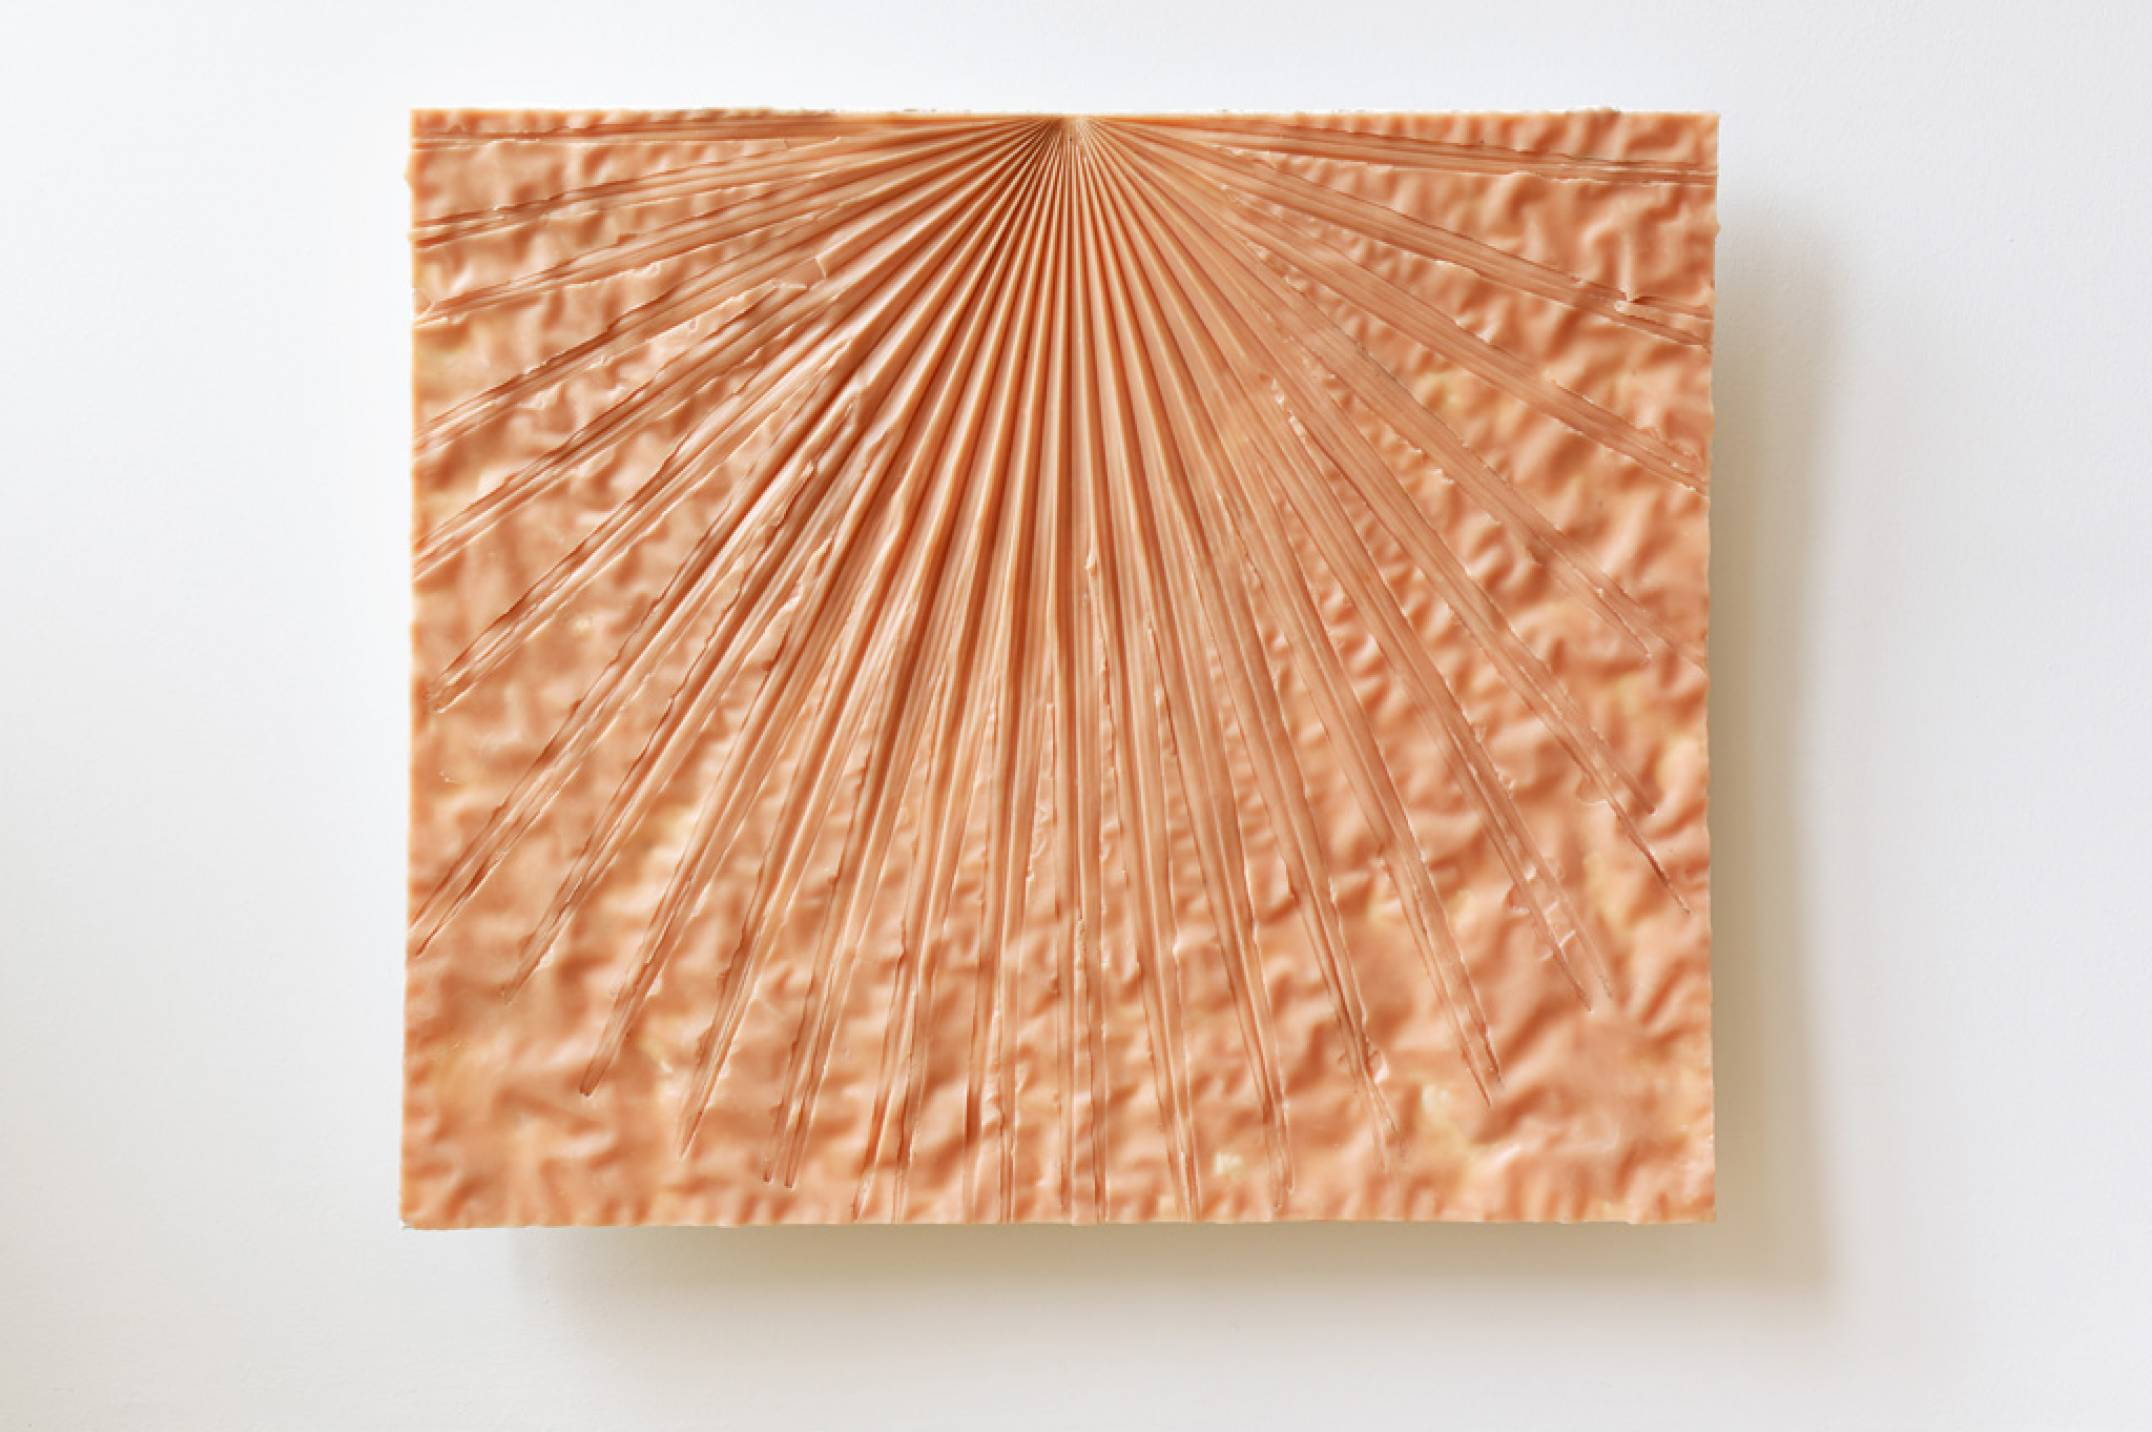 Giulio Delvè,<em> No cast any shadow at highnoon on a day about the summer solstice</em>, 2017, carnauba wax, beeswax, plaster, 52 × 61 × 5 cm - Mendes Wood DM